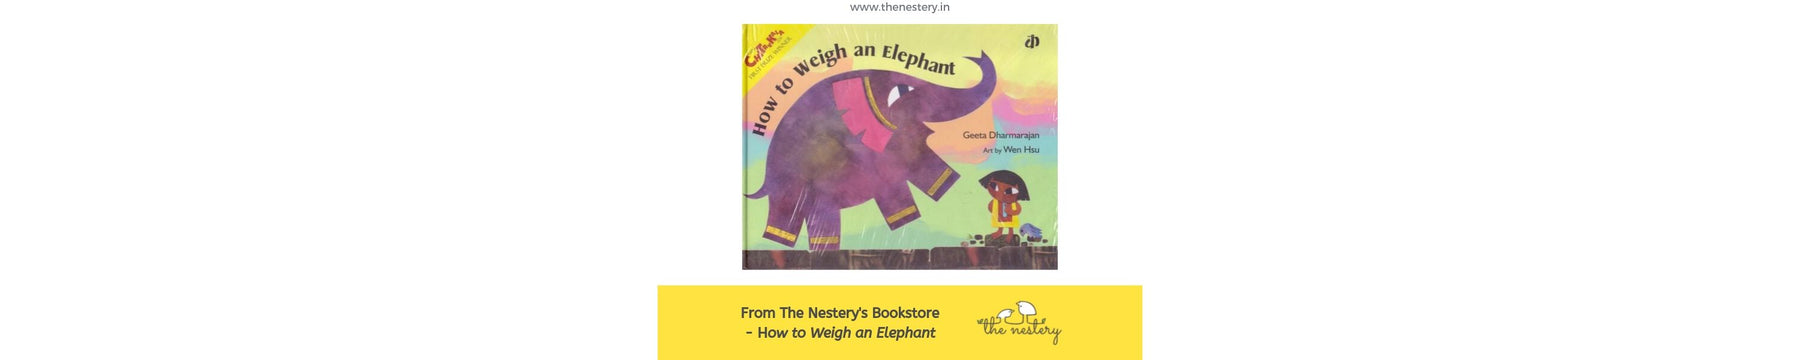 Book Review - How to Weigh An Elephant